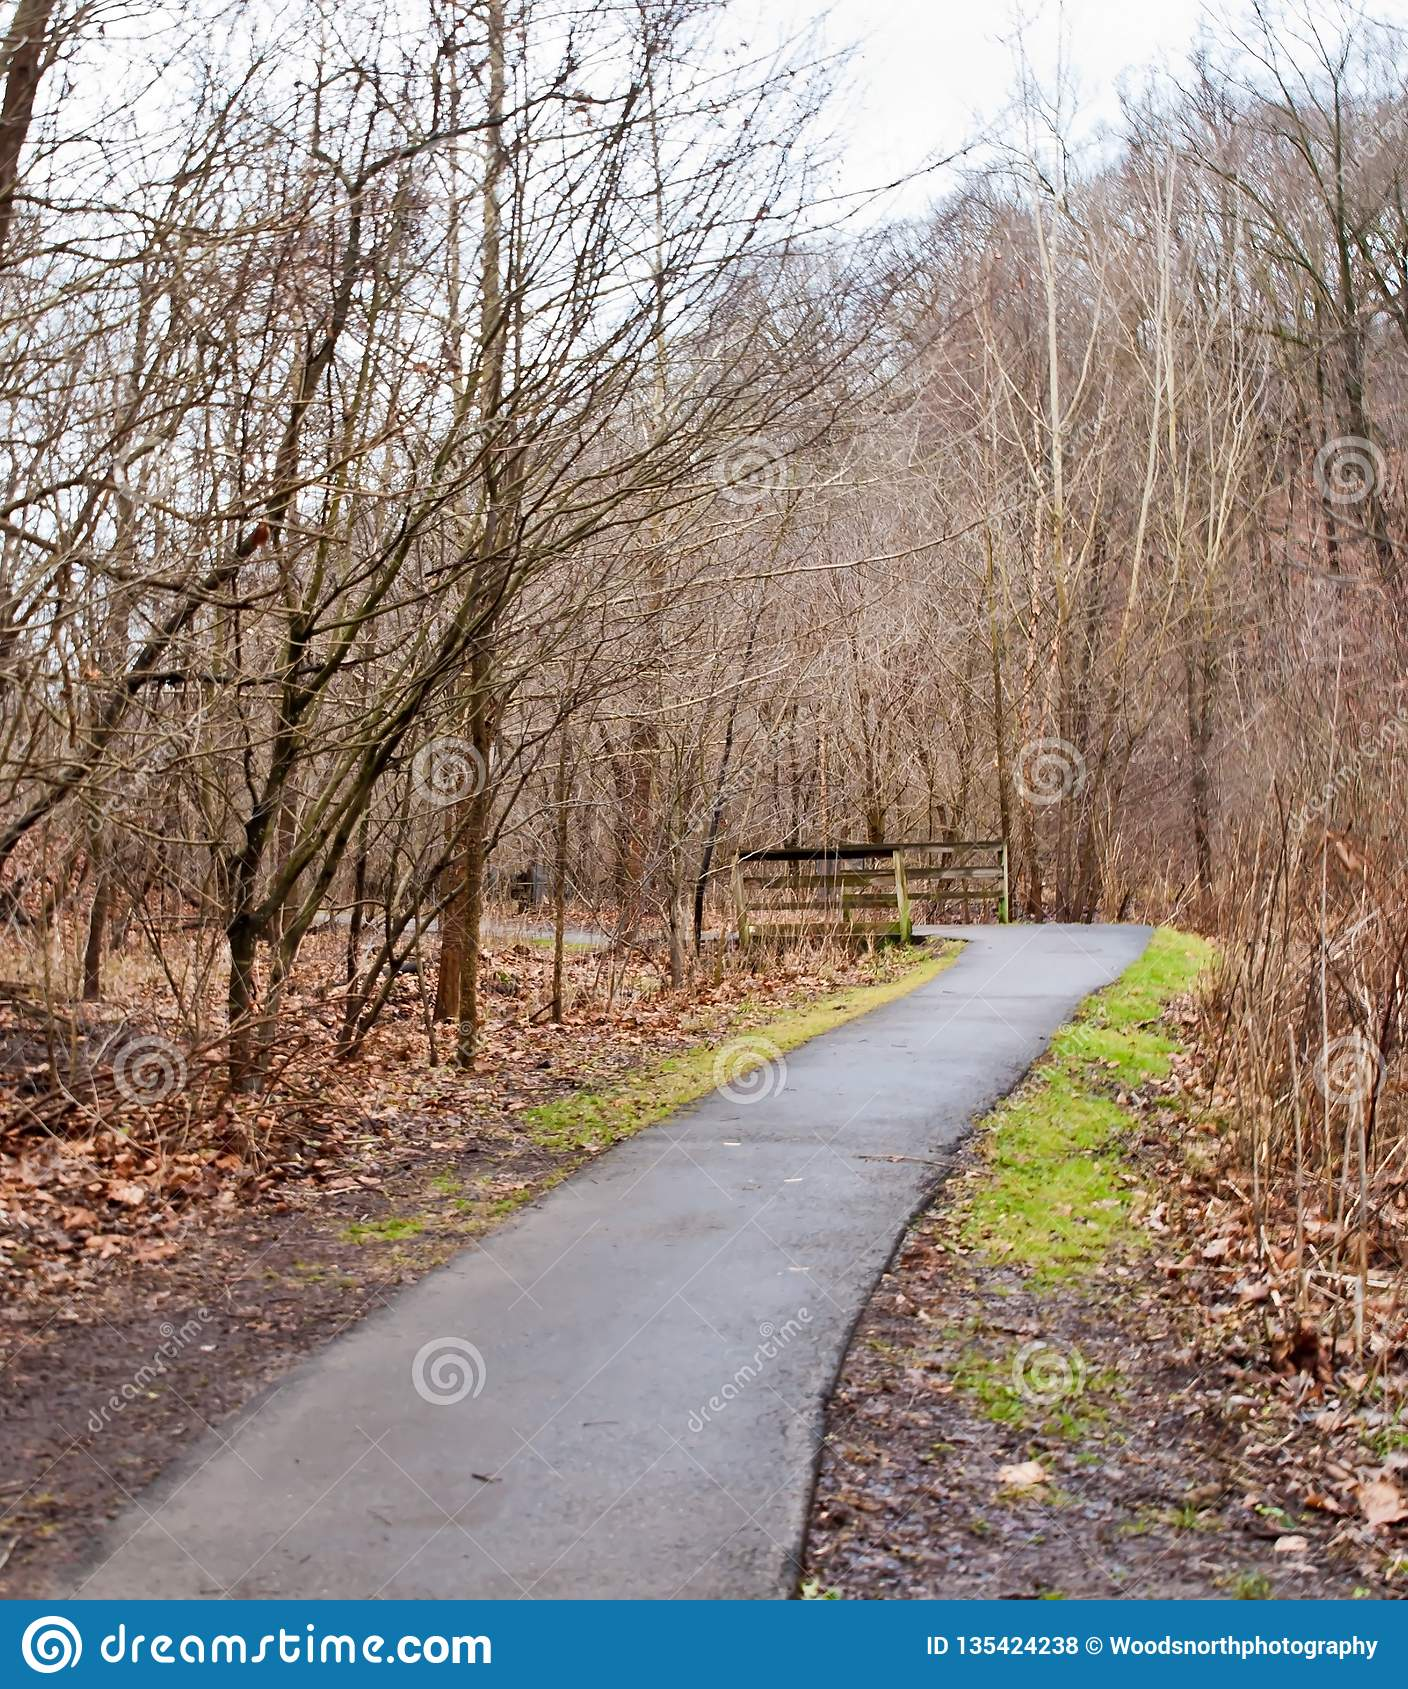 A paved path leading to a wooden bridge in Frick Park